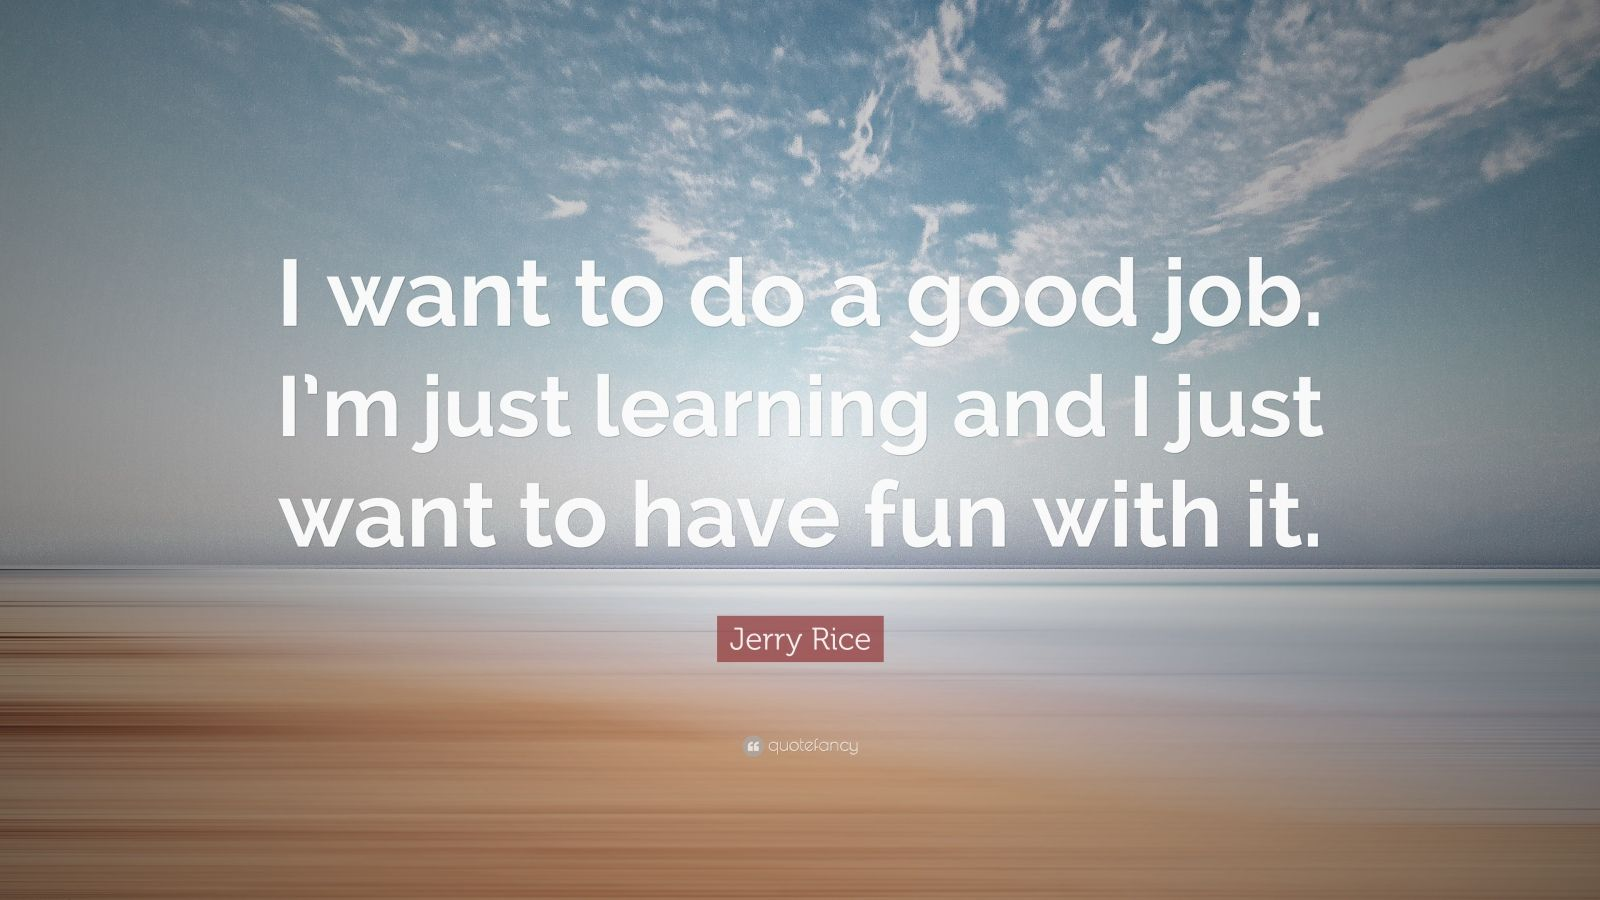 """Jerry Rice Quote: """"I want to do a good job. I'm just learning and I just want to have fun with it."""""""